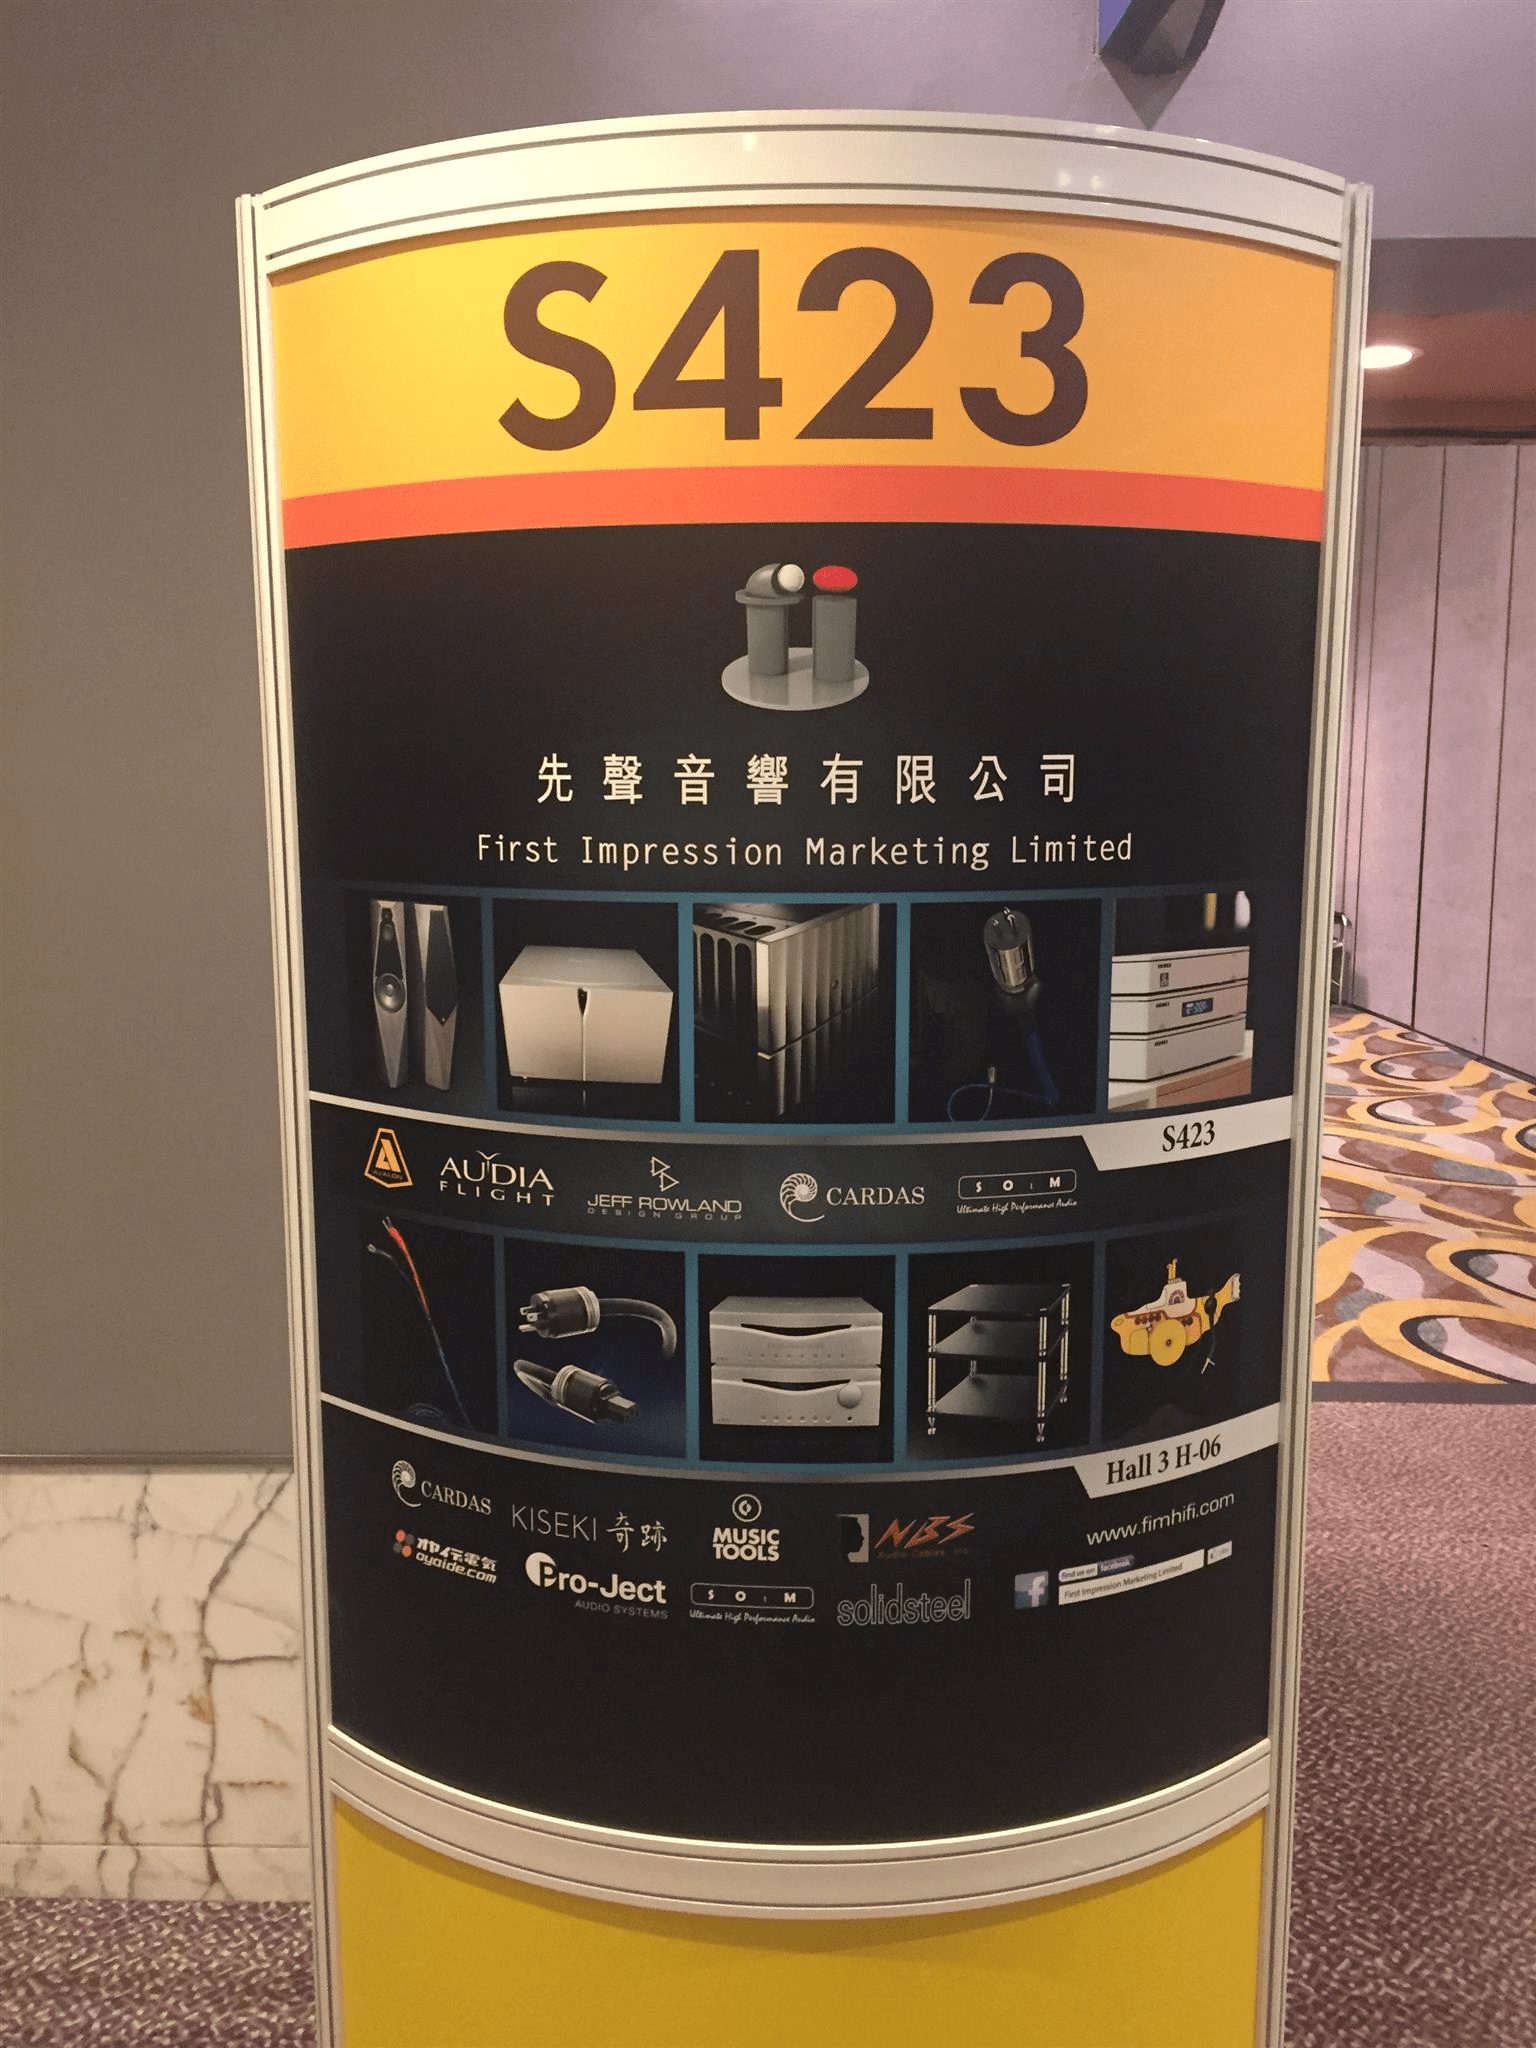 Hong Kong Hi-End AV Show 2018